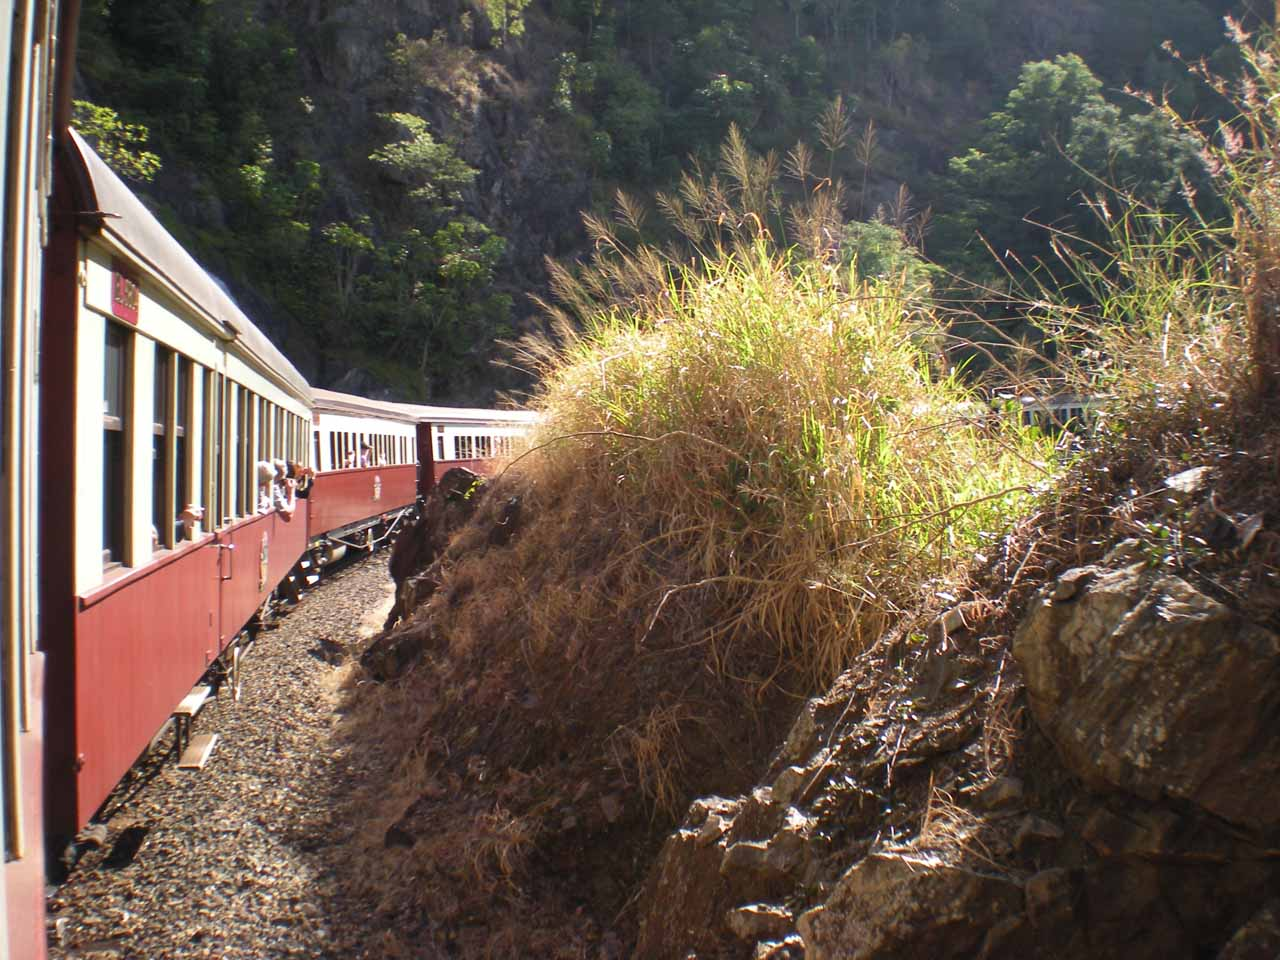 Looking back at the Kuranda Scenic Railway as the track was curling around a bend